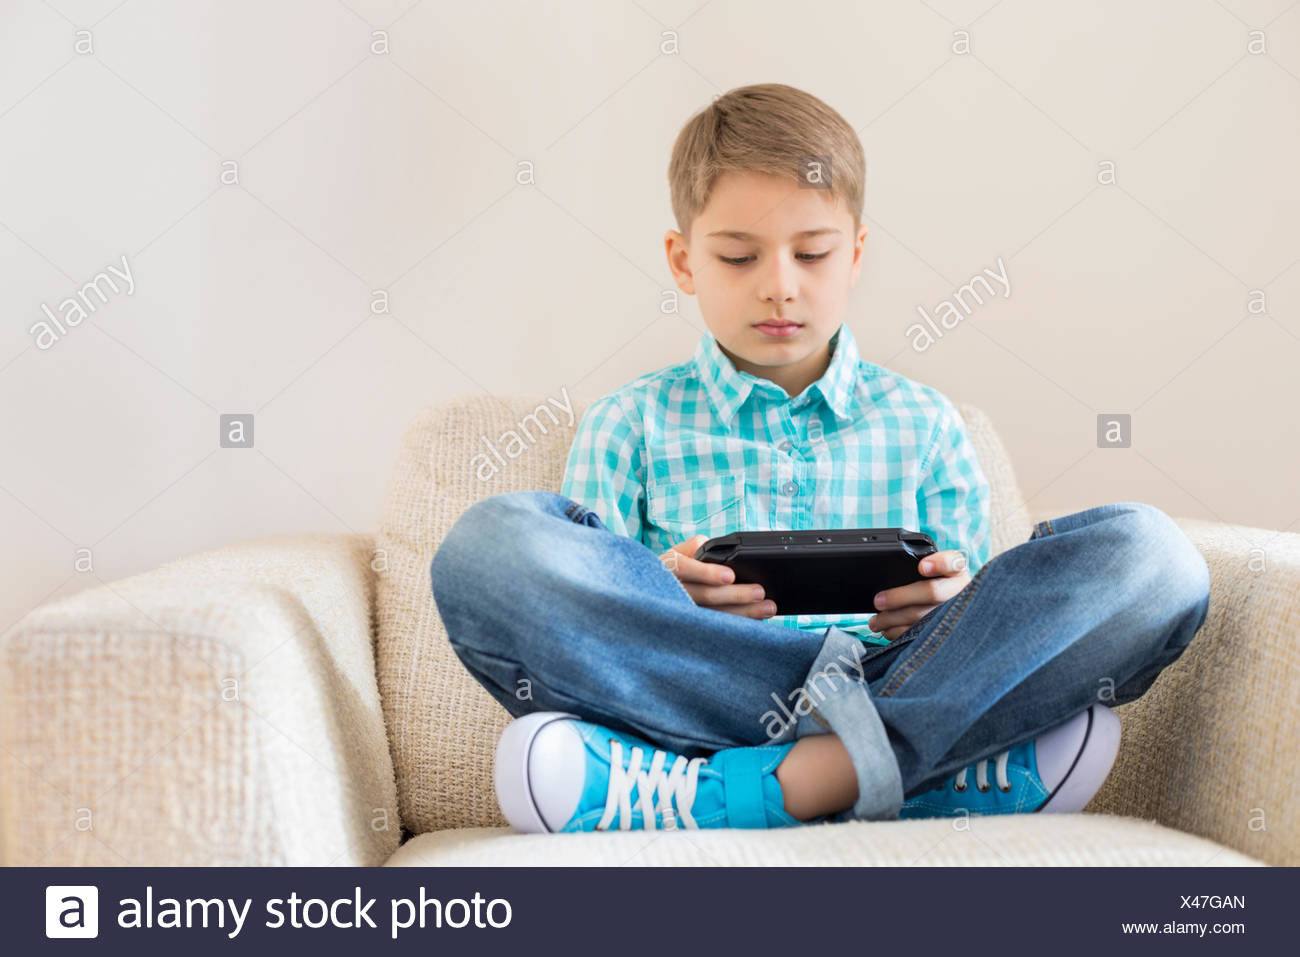 Boy playing hand-held video game on sofa - Stock Image